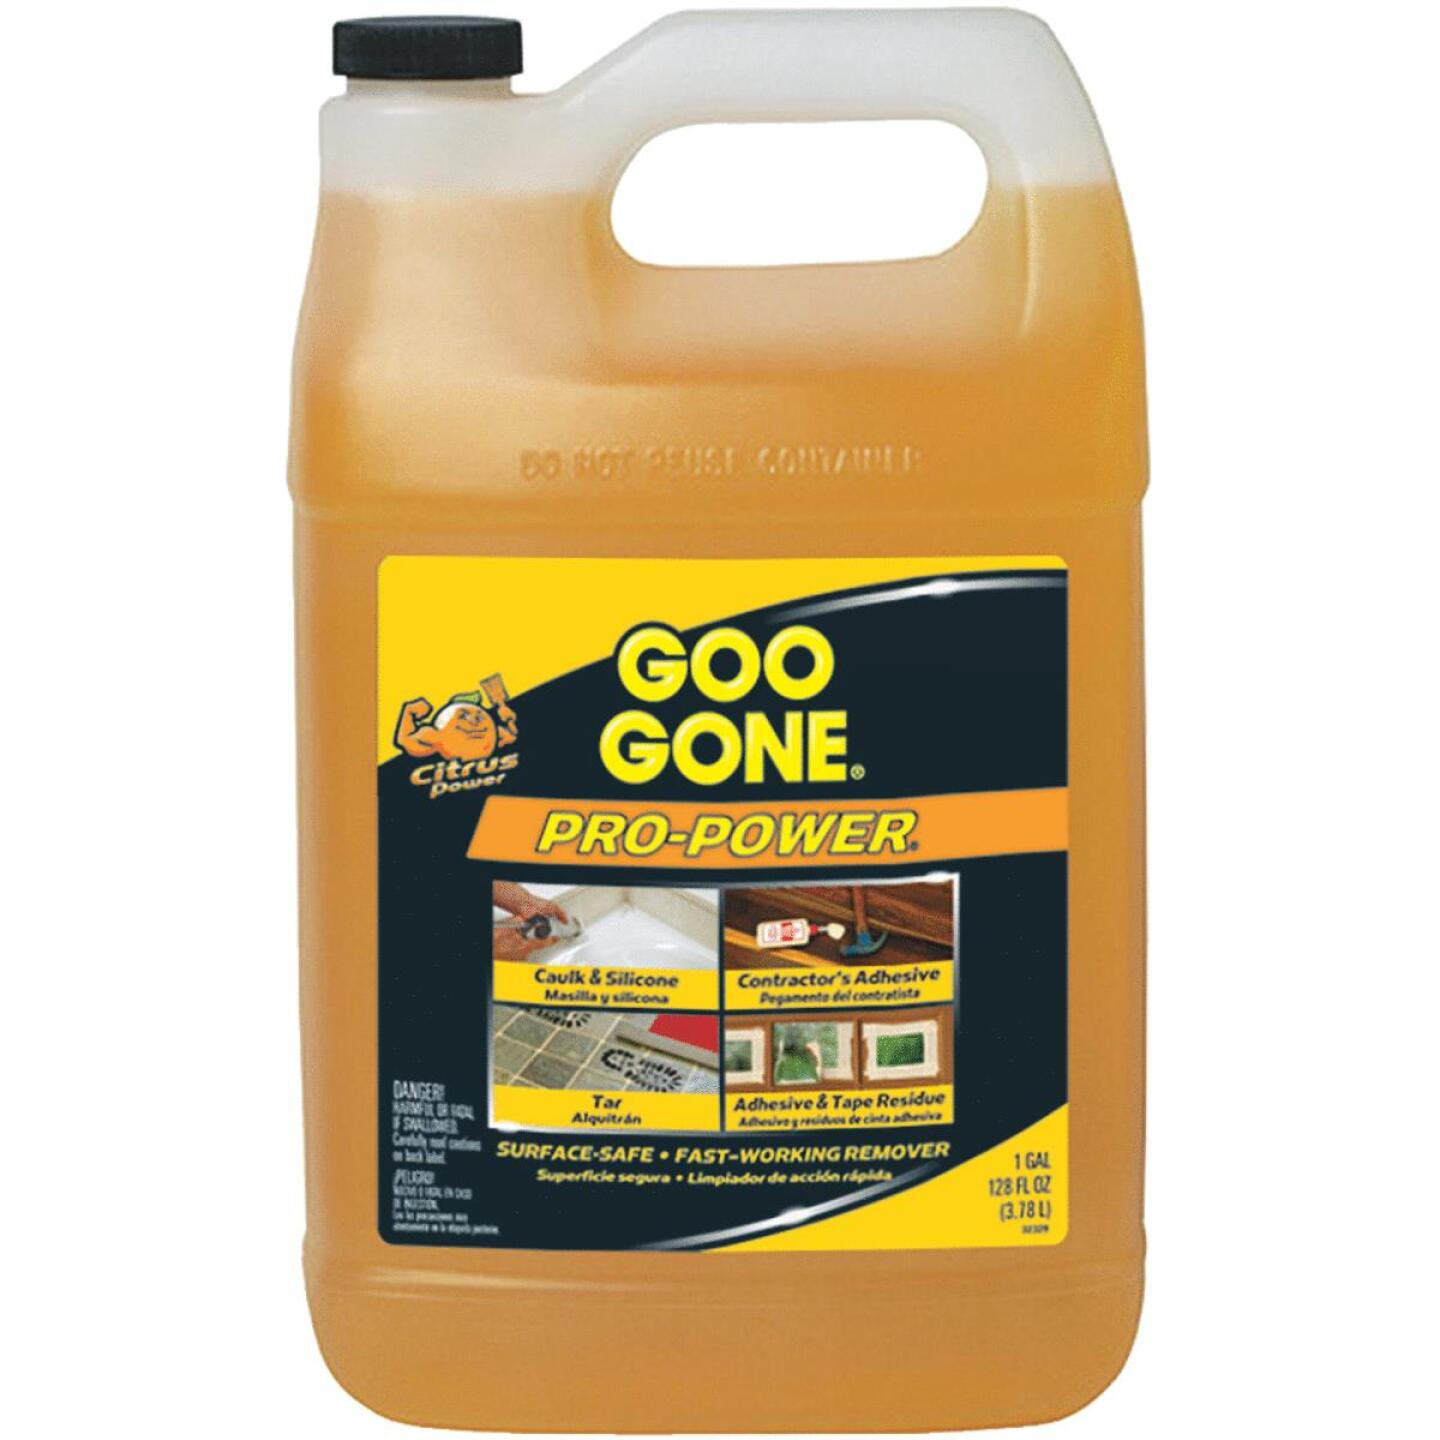 Goo Gone 1 Gal. Pro-Power Adhesive Remover Image 283